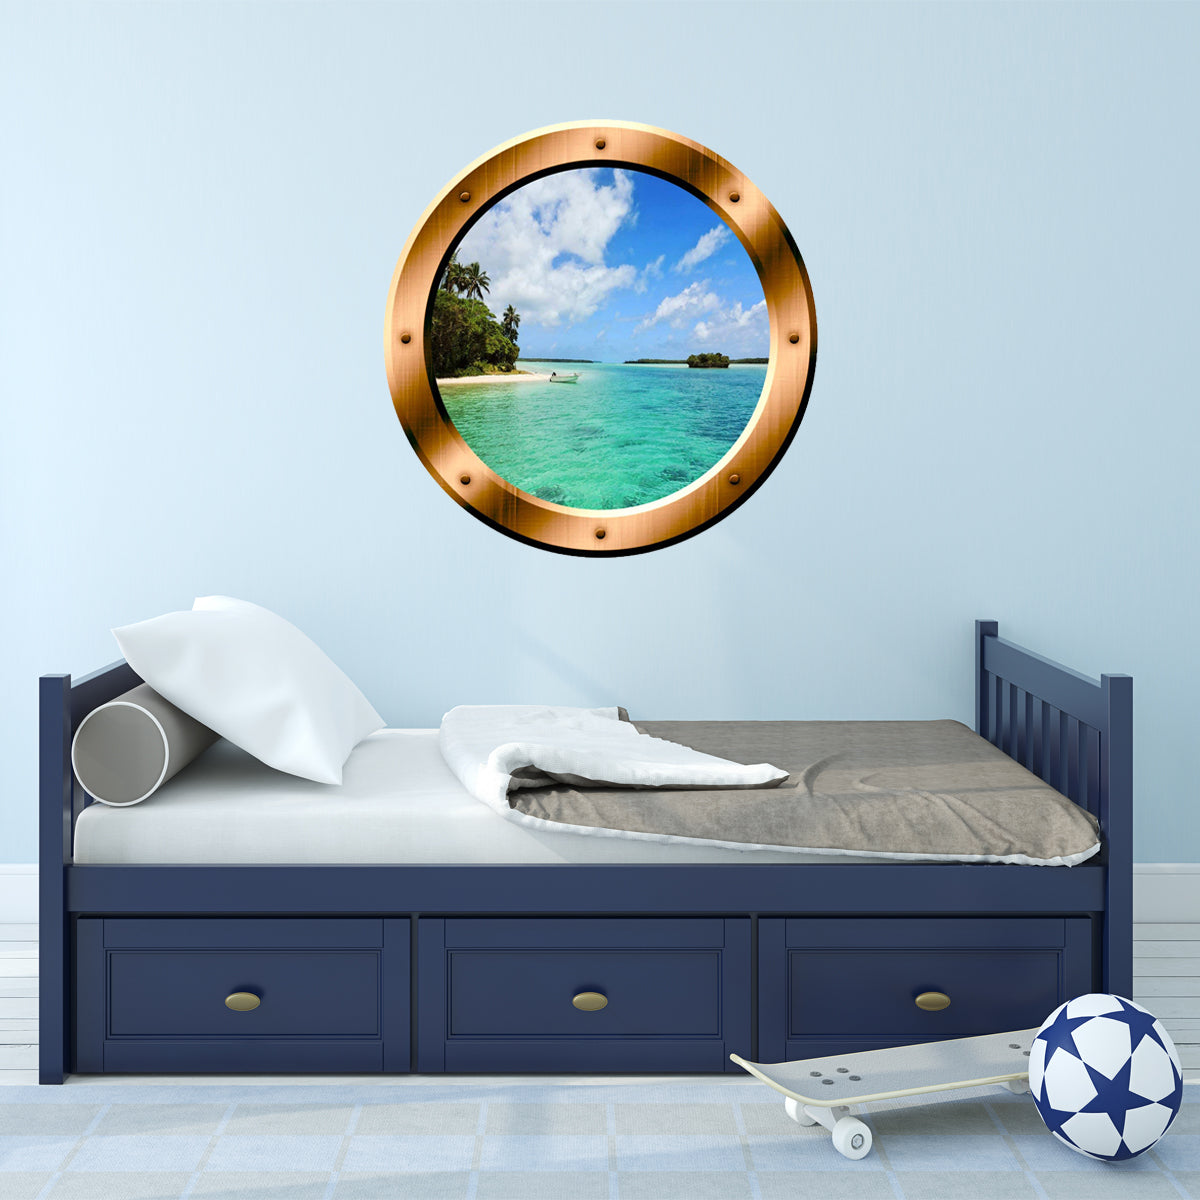 Vwaq 1 X Beach Porthole Ocean Wall Decal 3d Beach Wall Sticker Peel